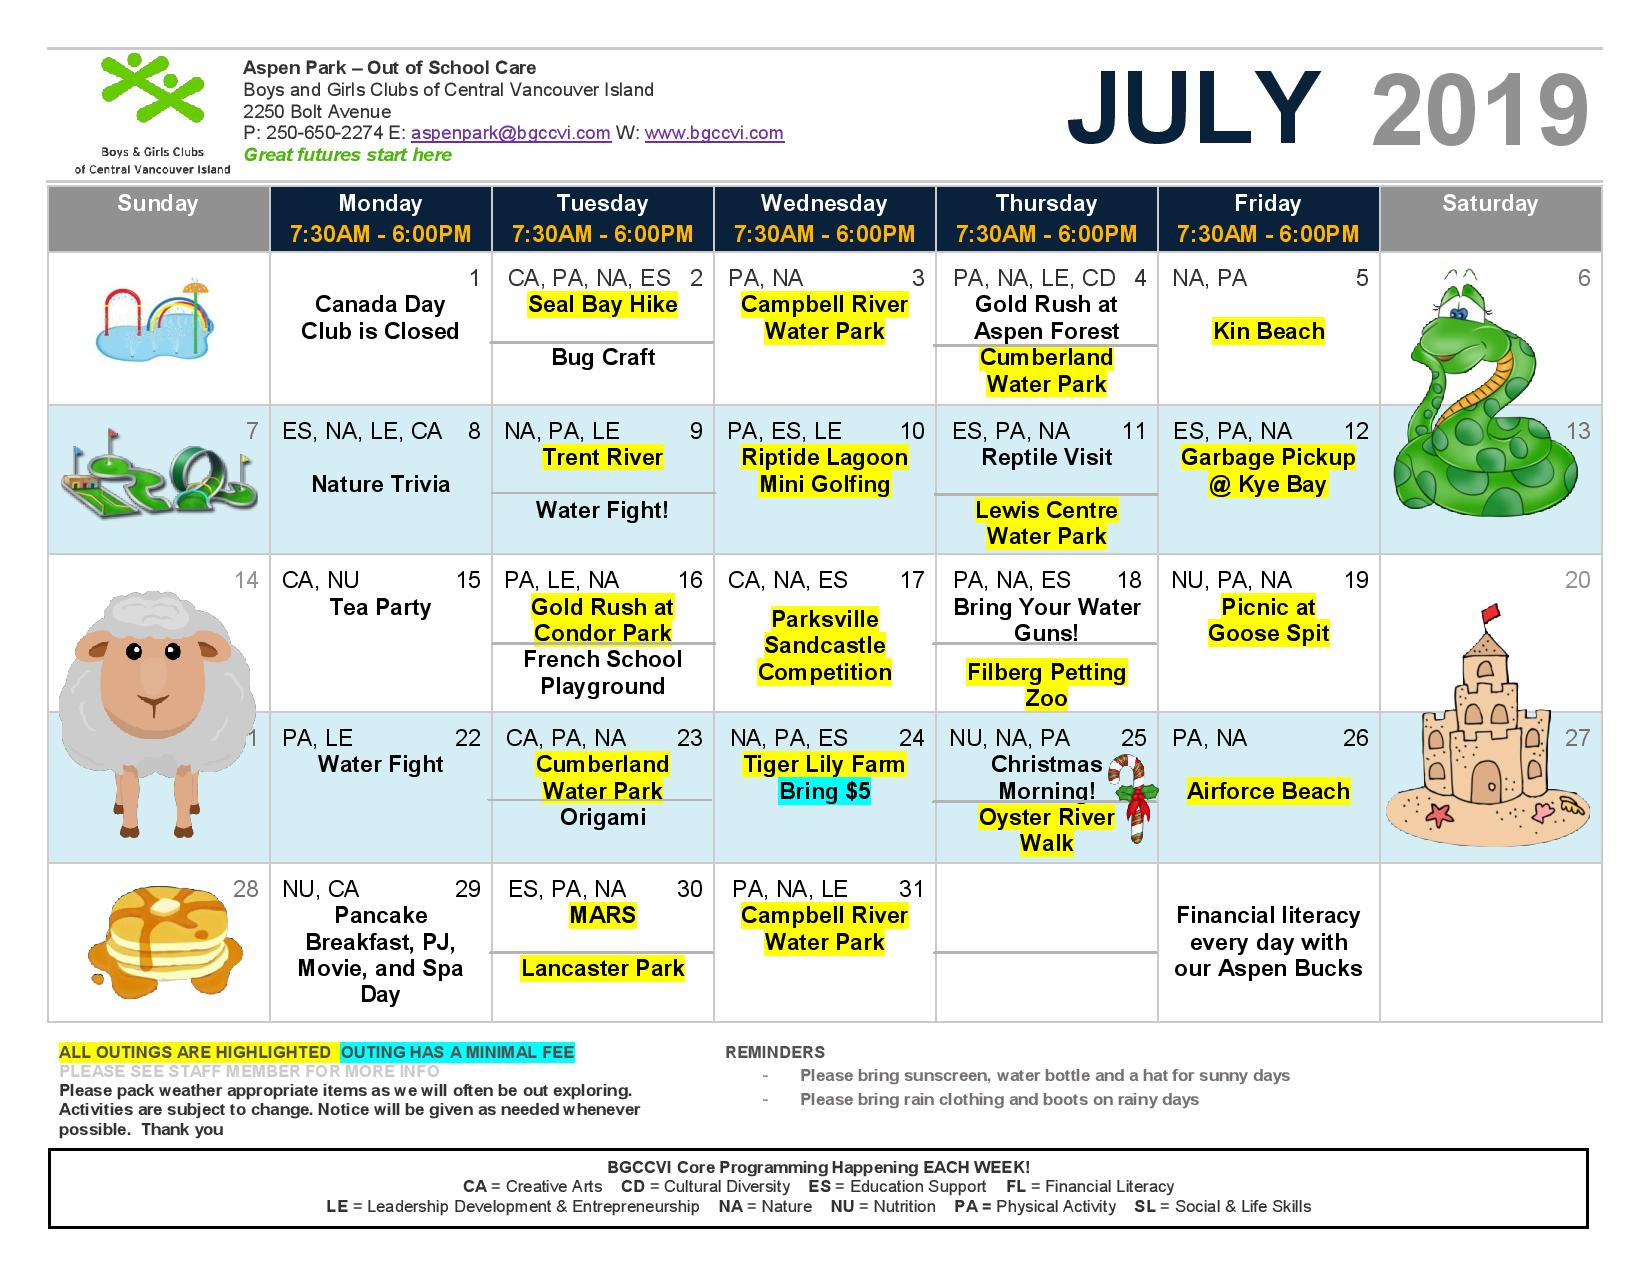 Calendar July 2019 Osc Page 001 – Boys & Girls Clubs Of For Boys And Girls Club Calender For Meetingd